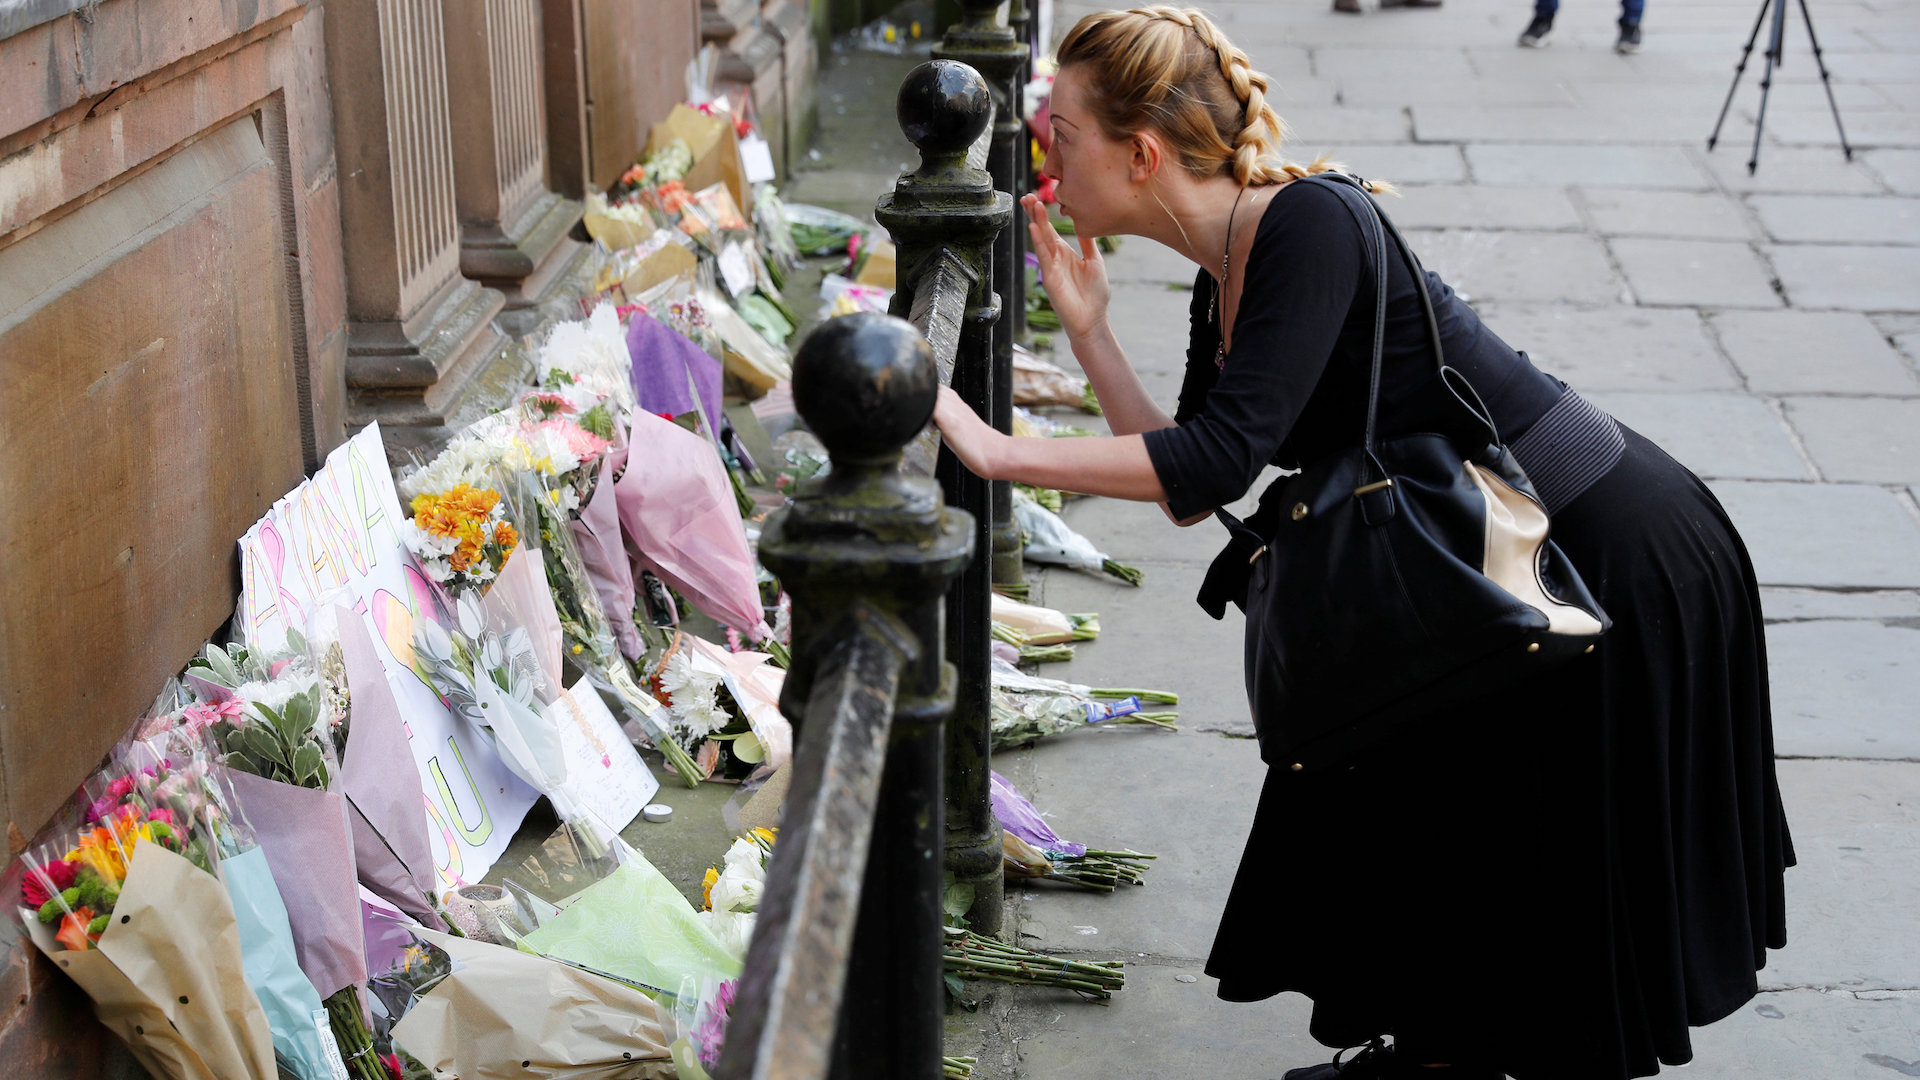 British prime minister raises nation's threat level, saying another attack 'may be imminent'